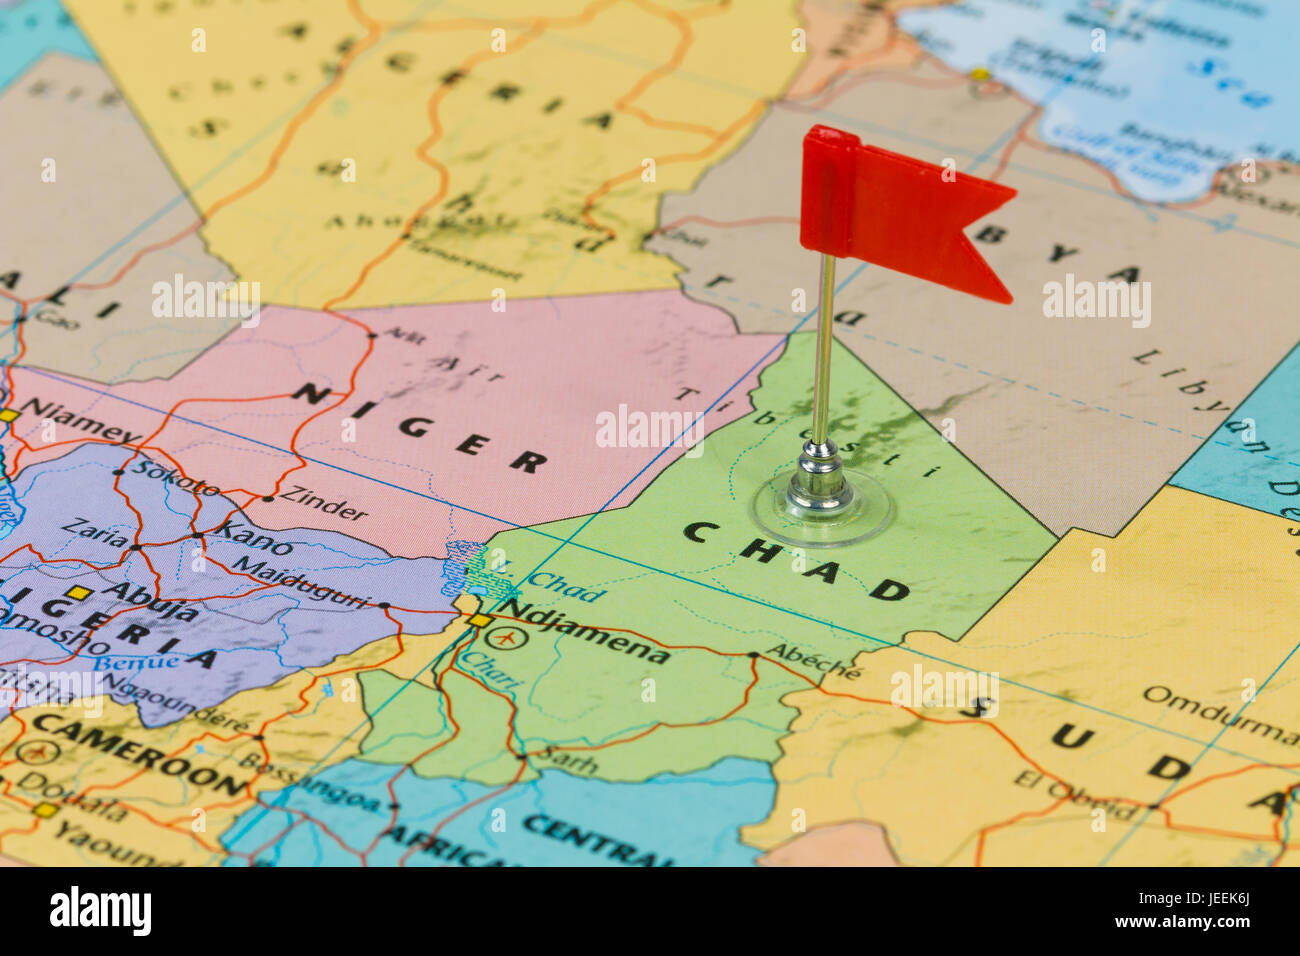 Photo of Chad marked by red flag in holder. Country on African continent. - Stock Image